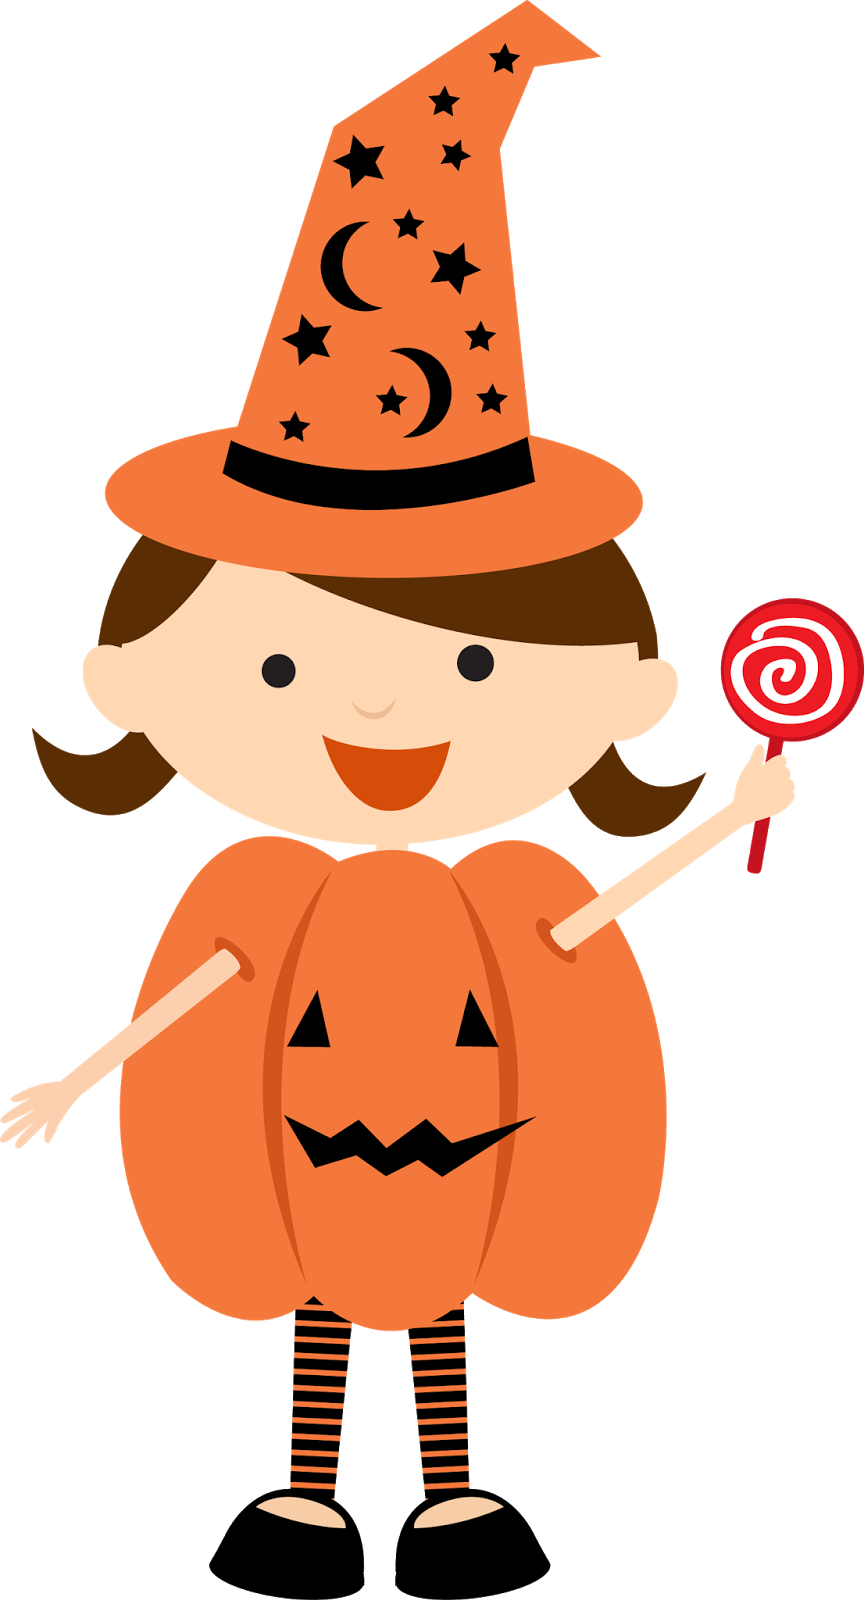 Last minute ideas is. Easy halloween clipart